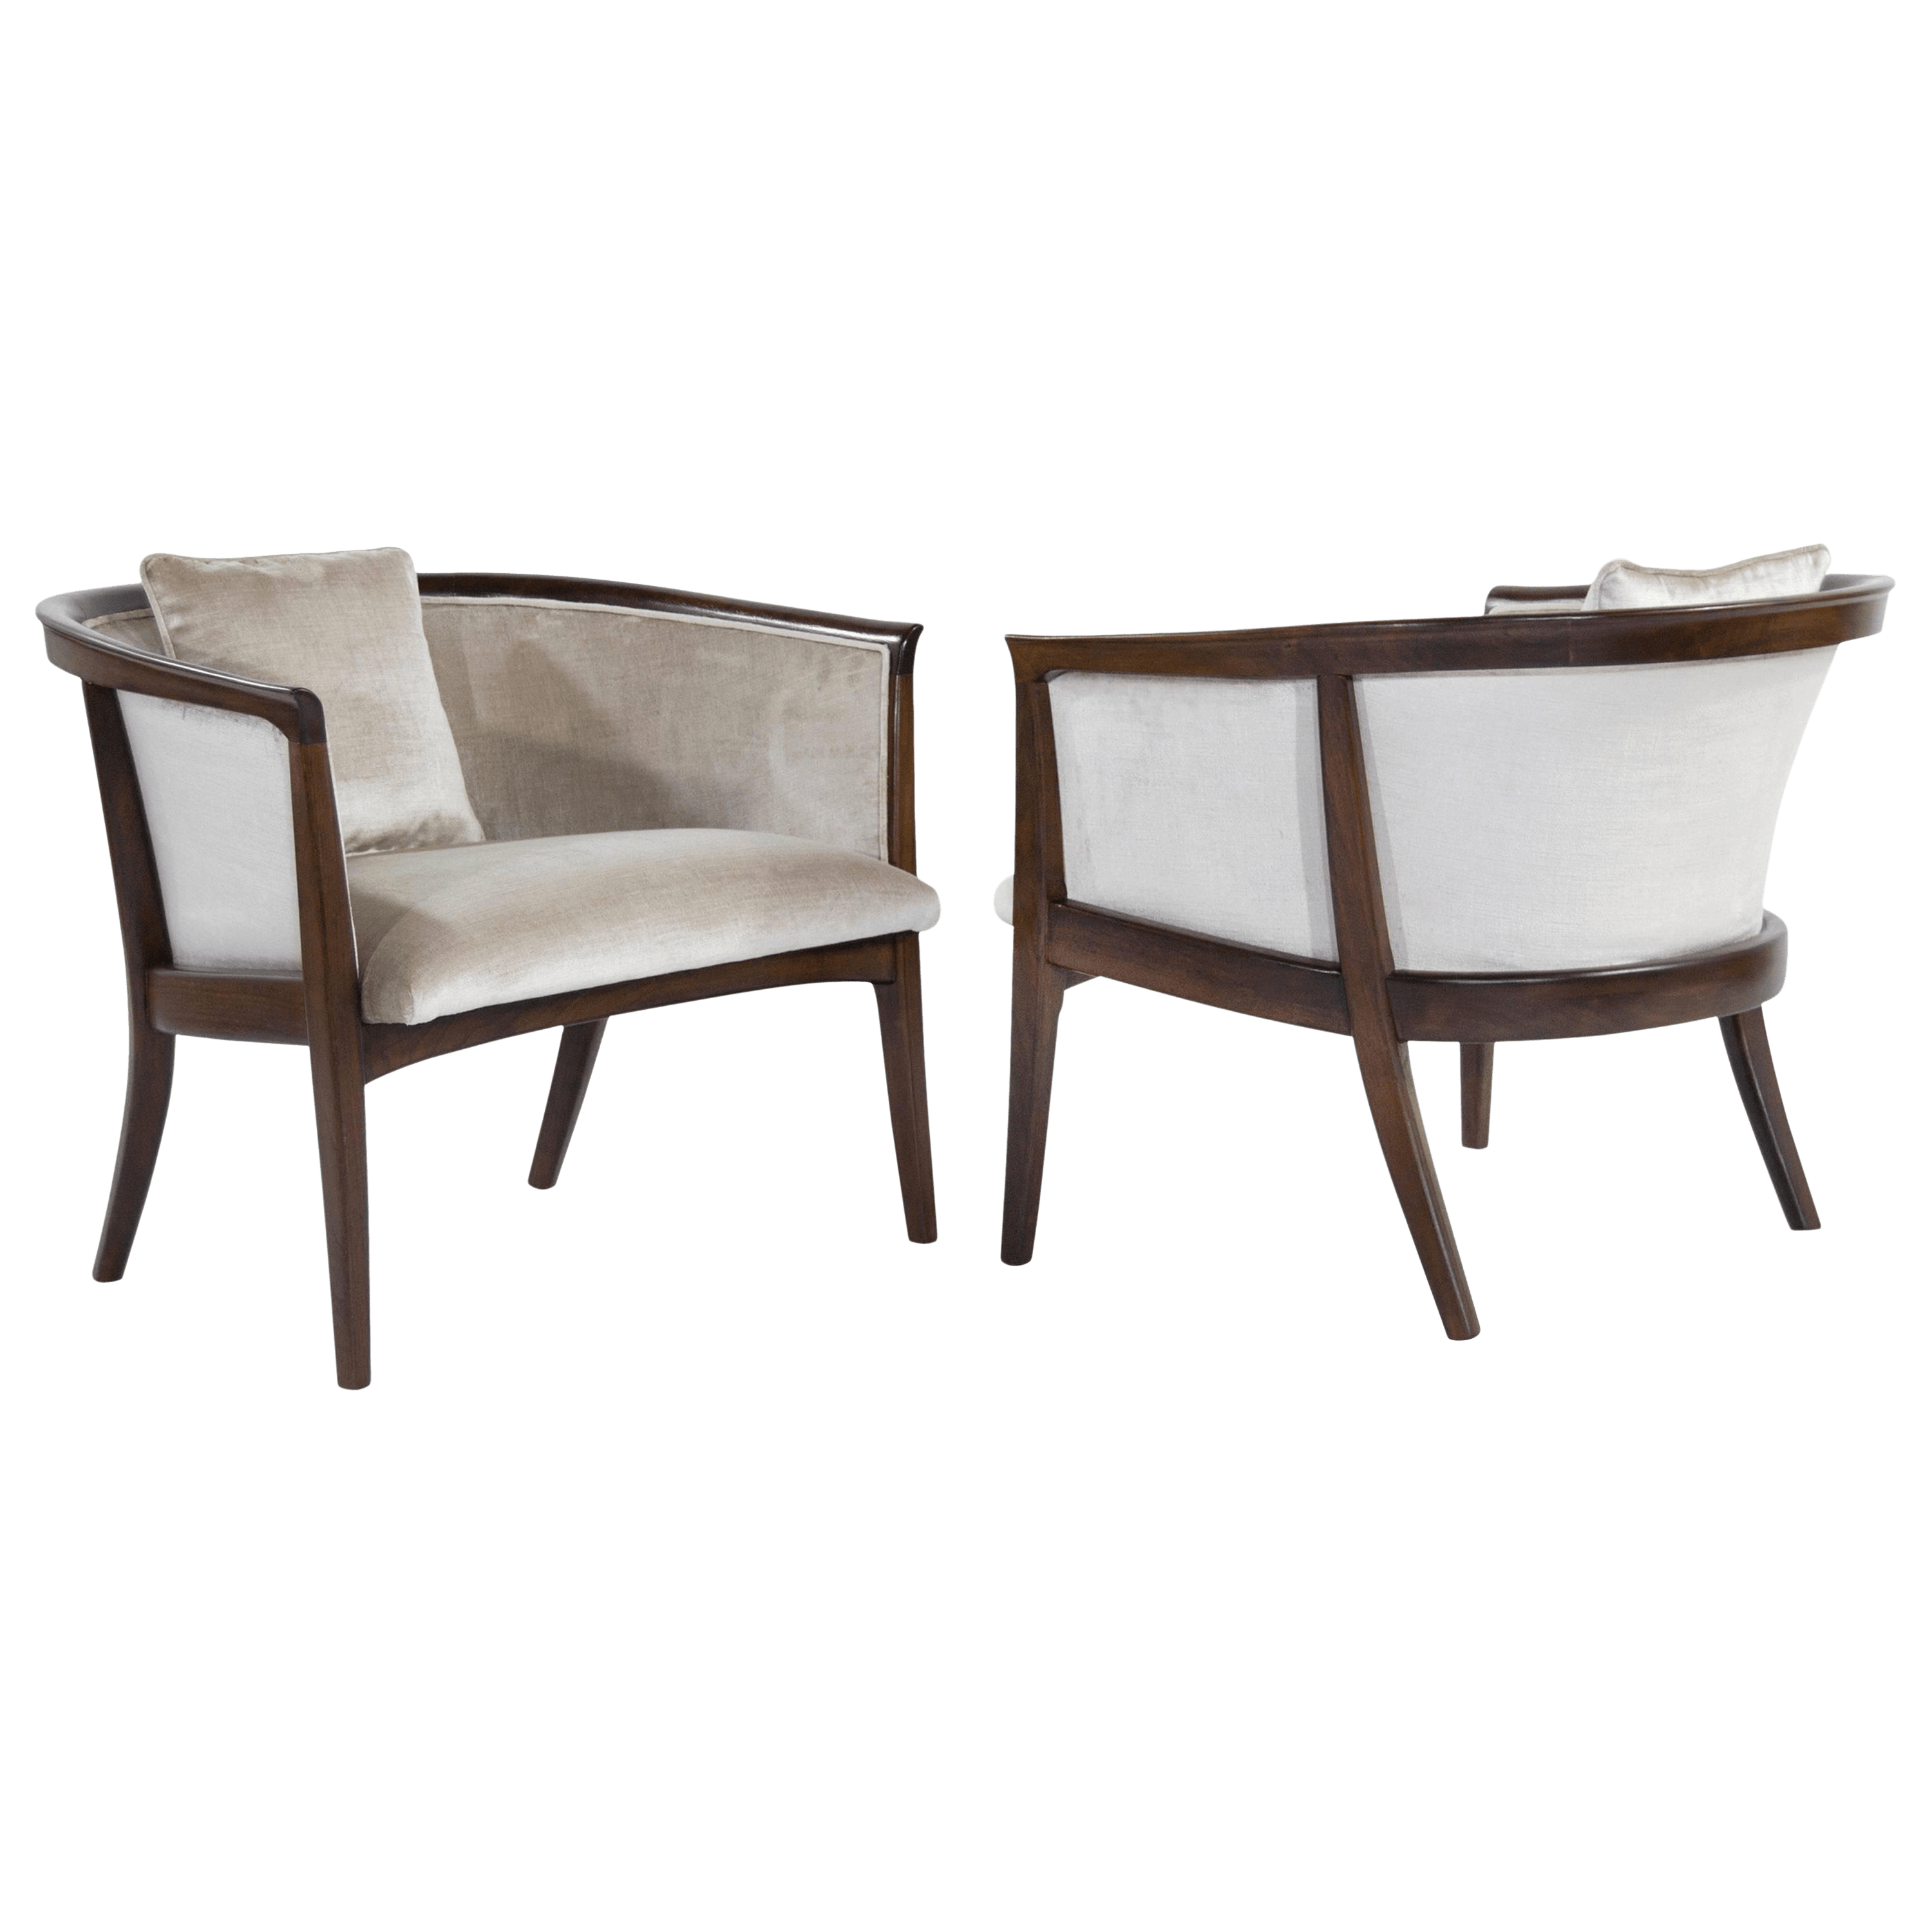 Tub Chairs Milo Baughman Walnut Frame Tub Chairs